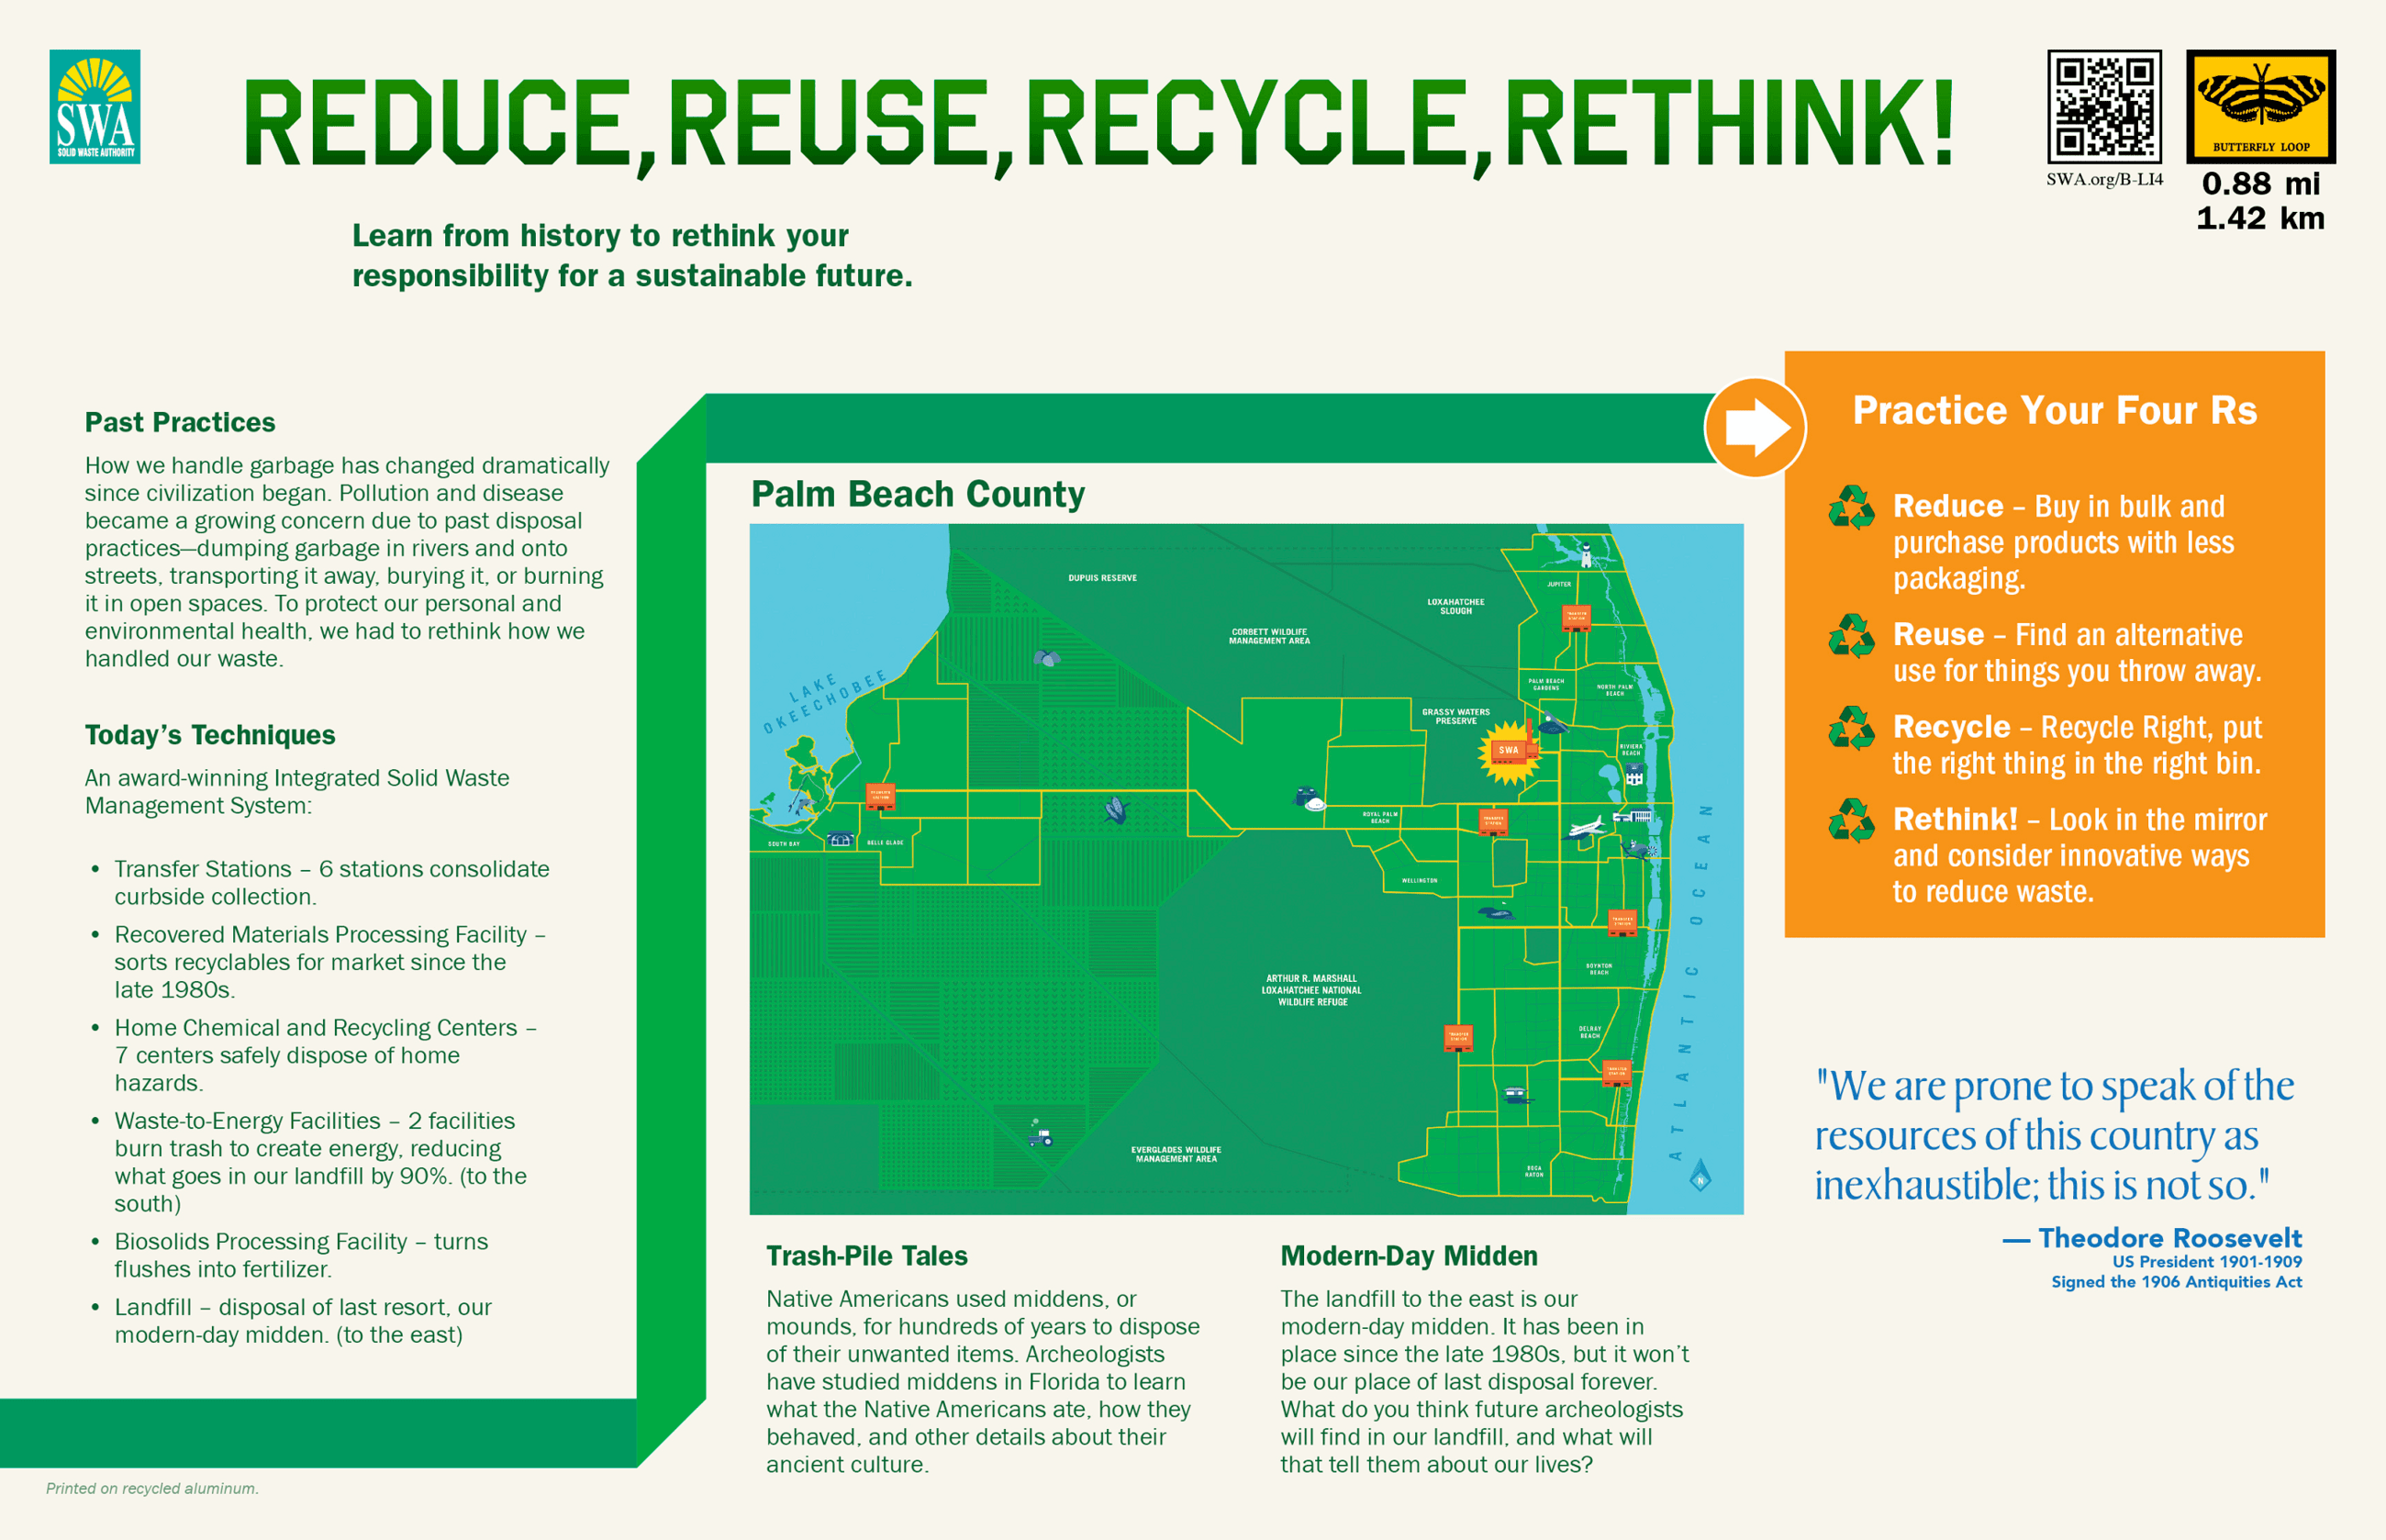 Reduce Reuce Recycle Rethink